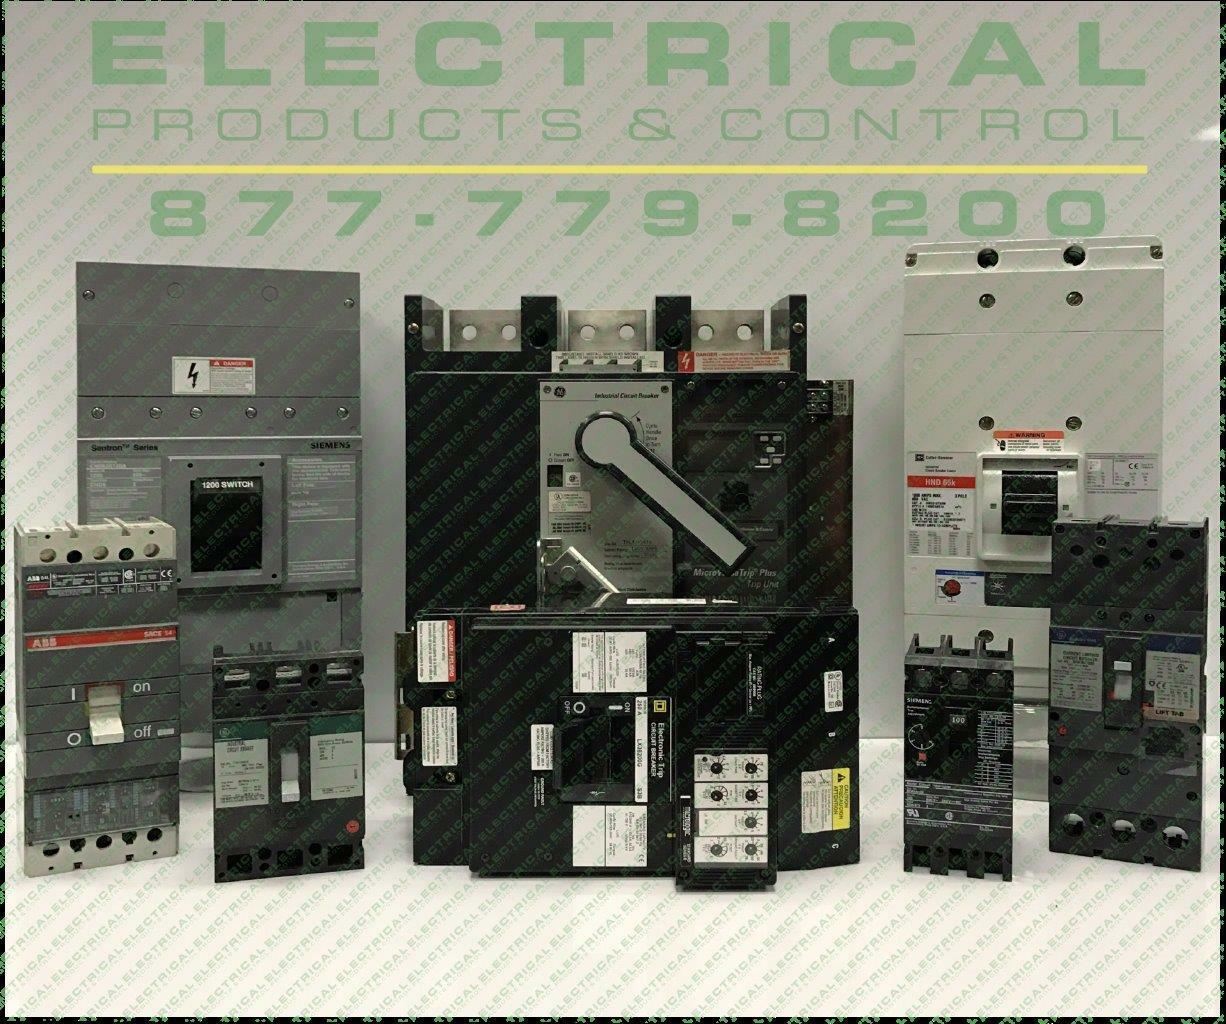 Siemens Ite Ld63t500 Trip Unit New In Box 46999 Picclick Trippingcircuitbreakerpaneljpg 1 Of 1only 5 Available